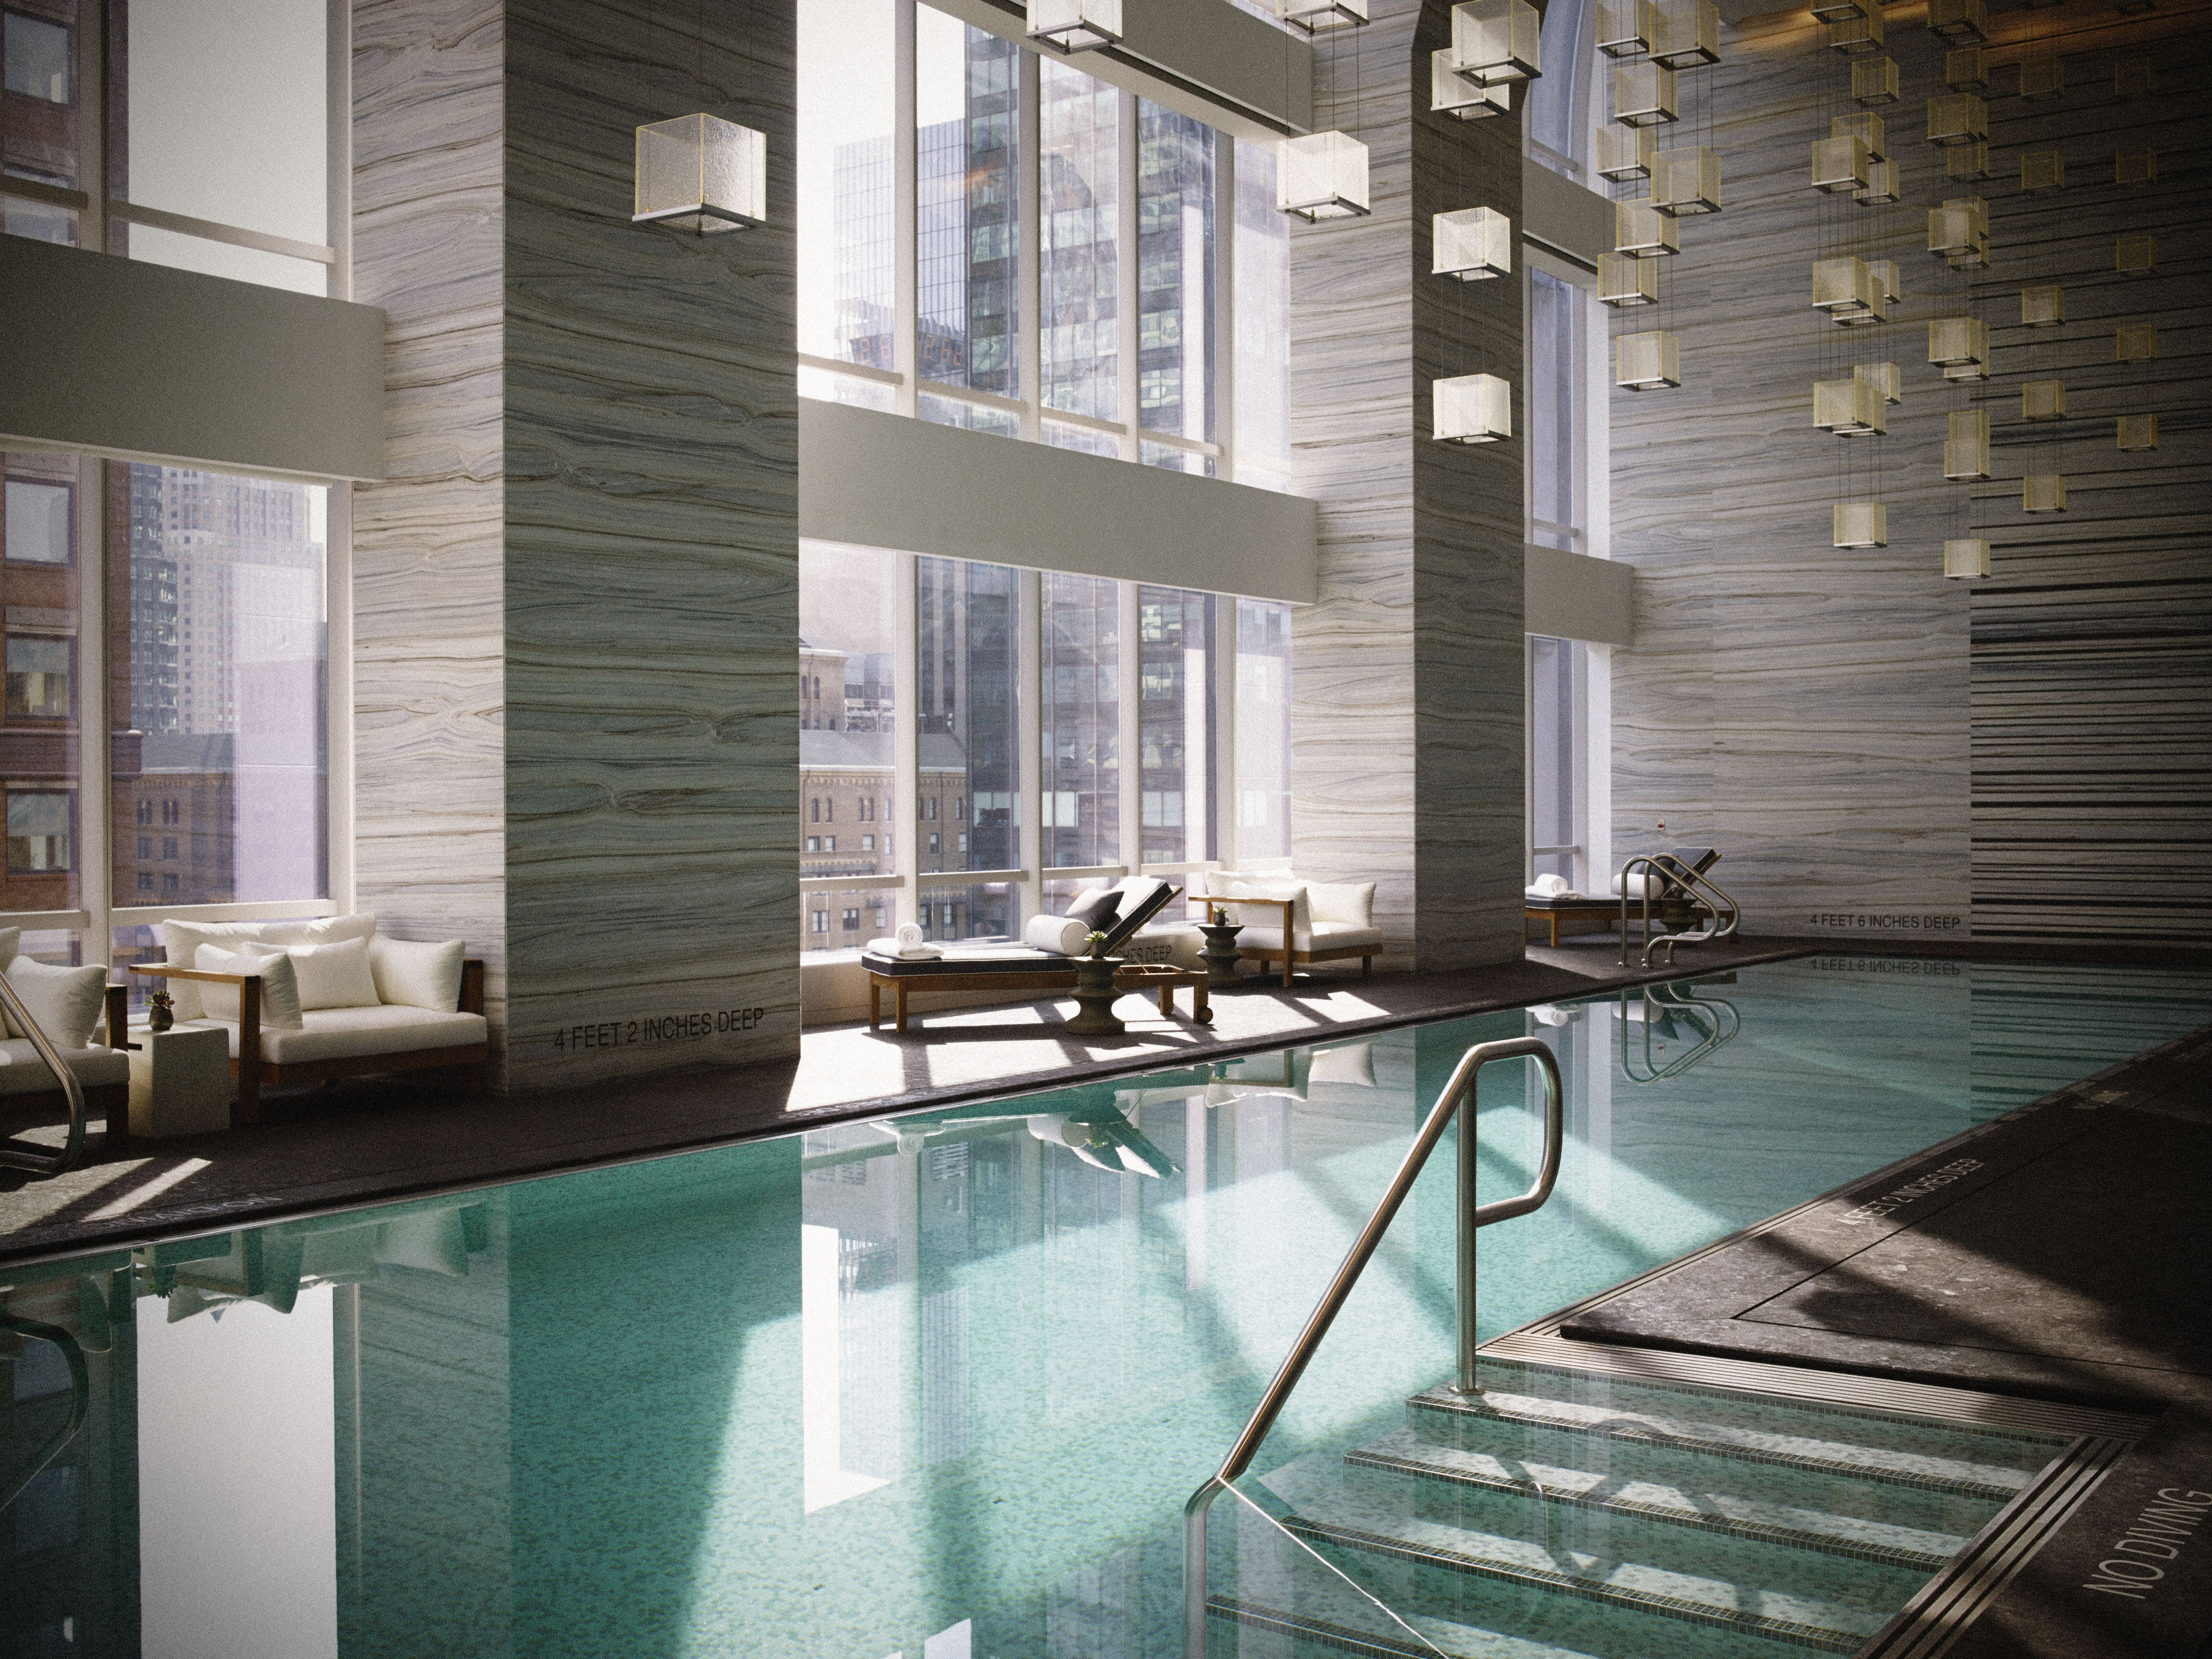 Park Hyatt New York's indoor swimming pool features underwater speakers playing an exclusive soundtrack from Carnegie Hall. (Photo: Business Wire)